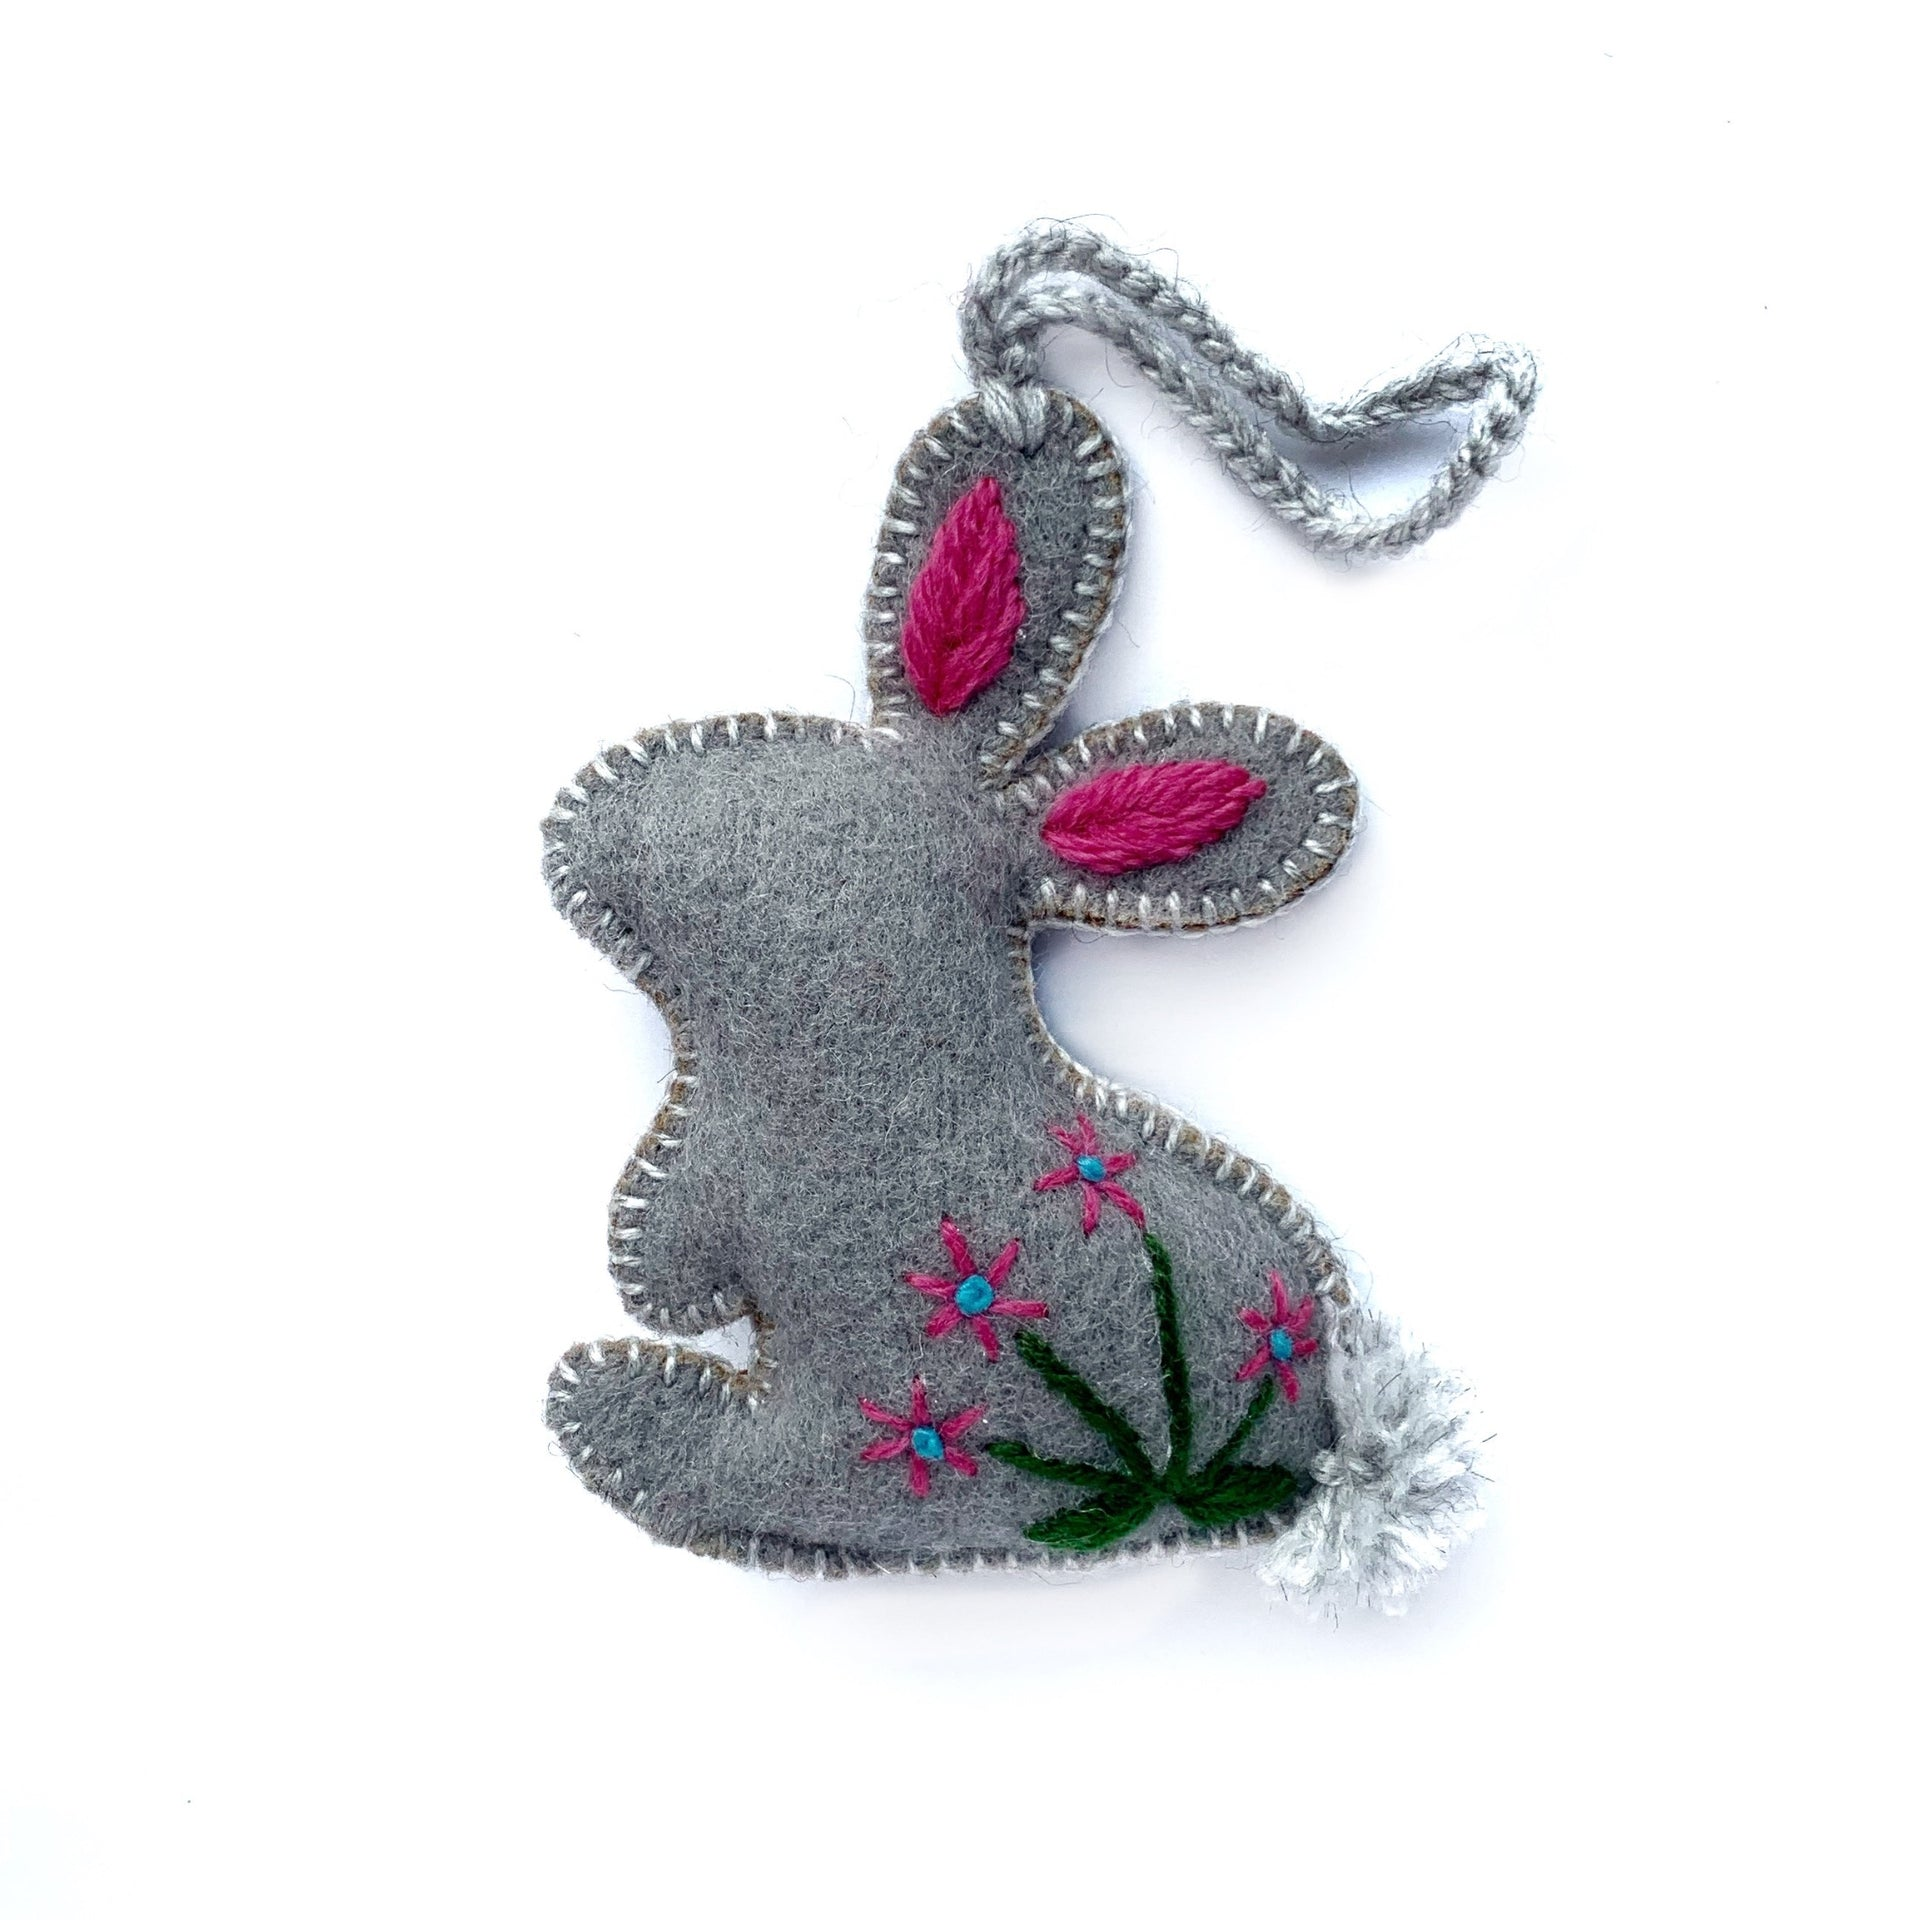 Easter Ornament Trio, Embroidered Wool